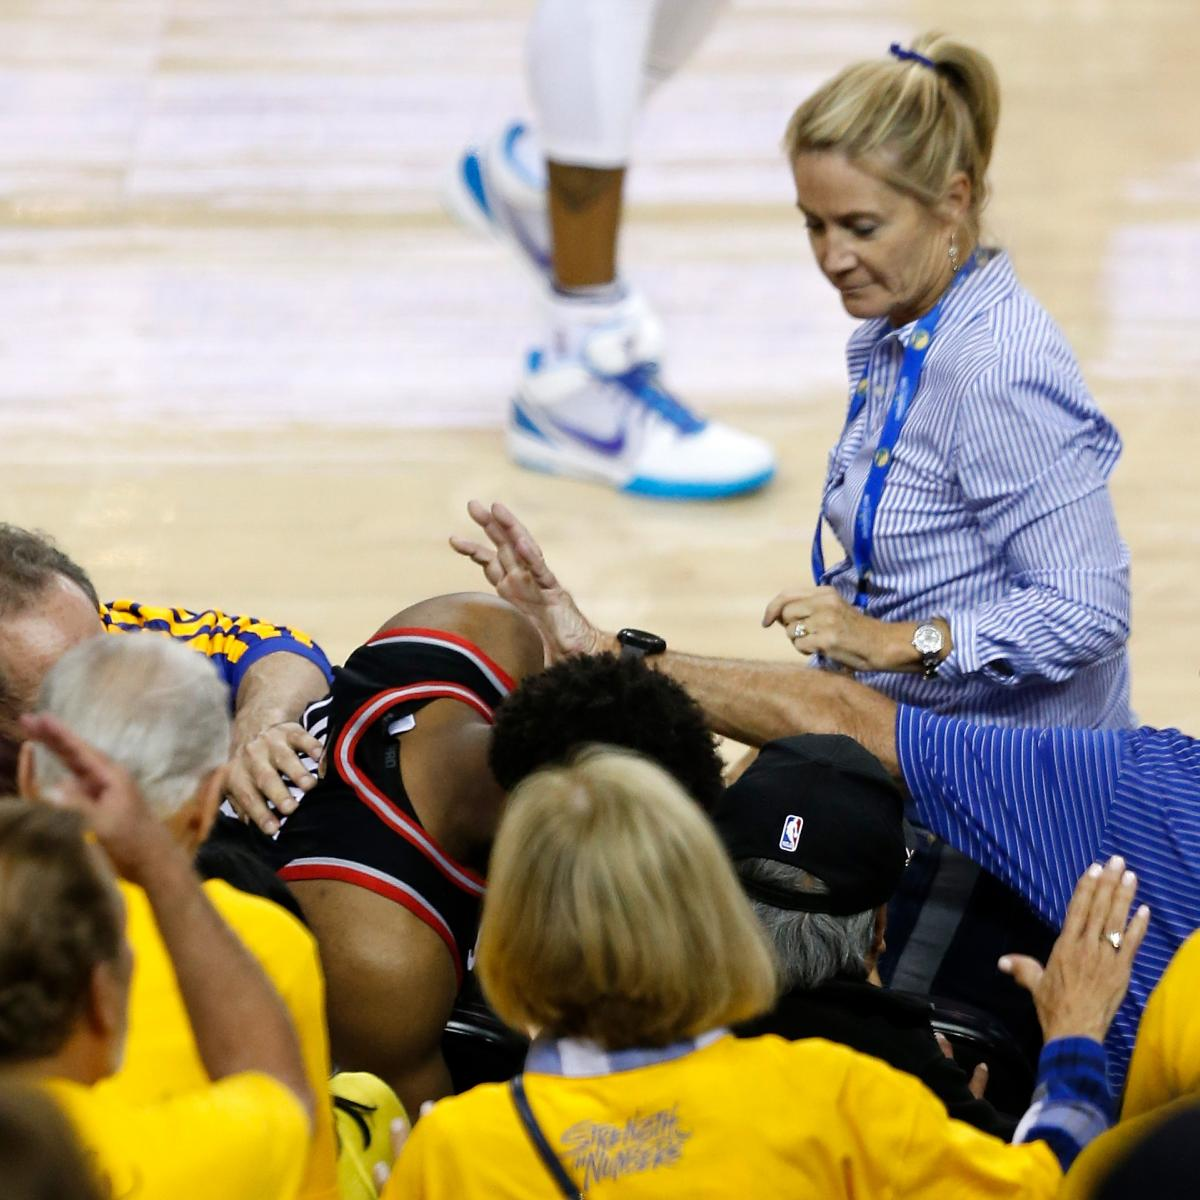 Steve Kerr Apologizes for Warriors Part-Owner Pushing Kyle Lowry in Game 3 Loss